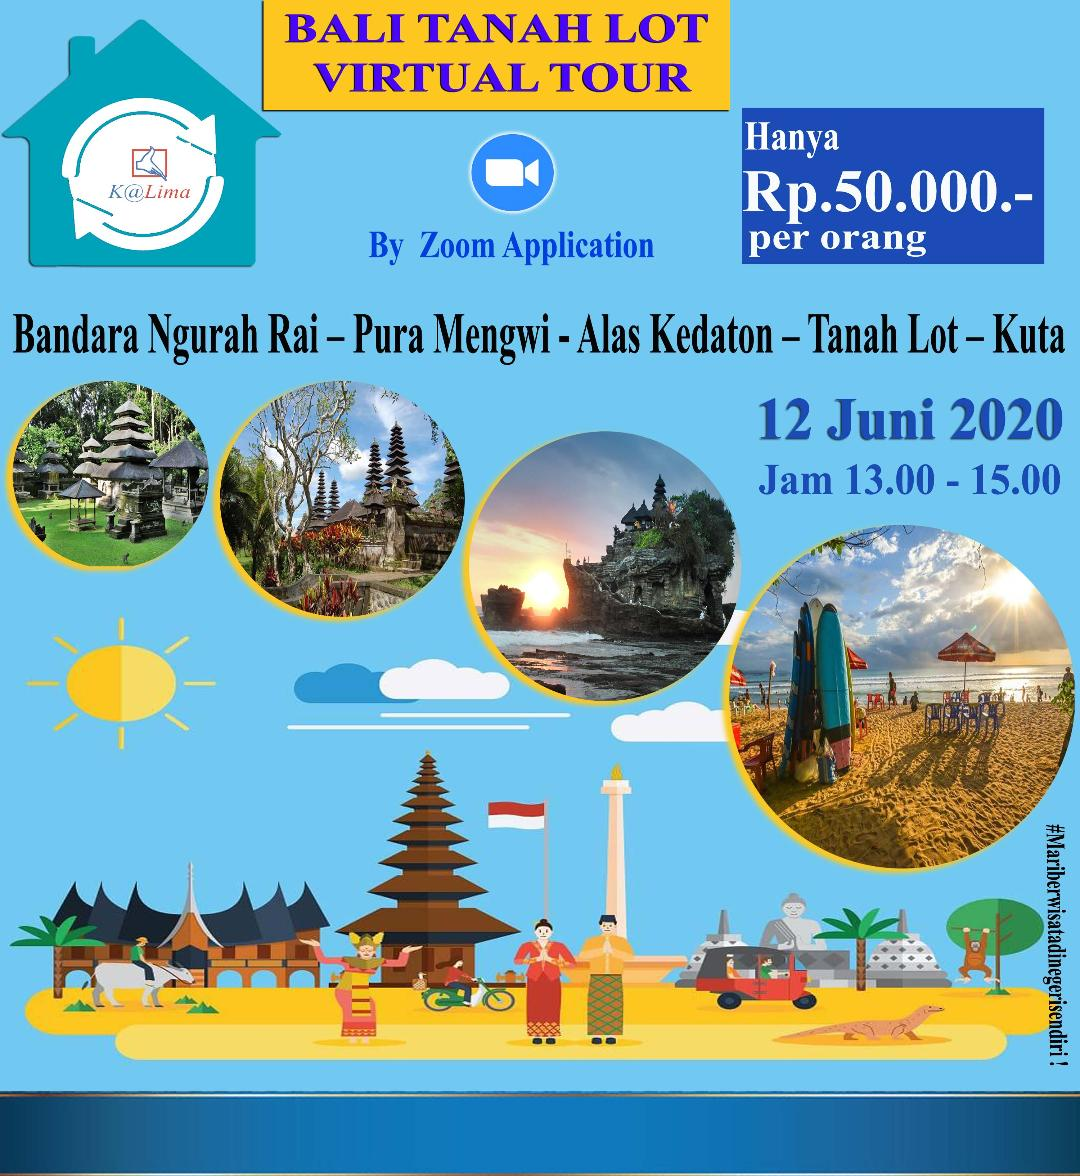 Virtual Tour Bali Tanah Lot